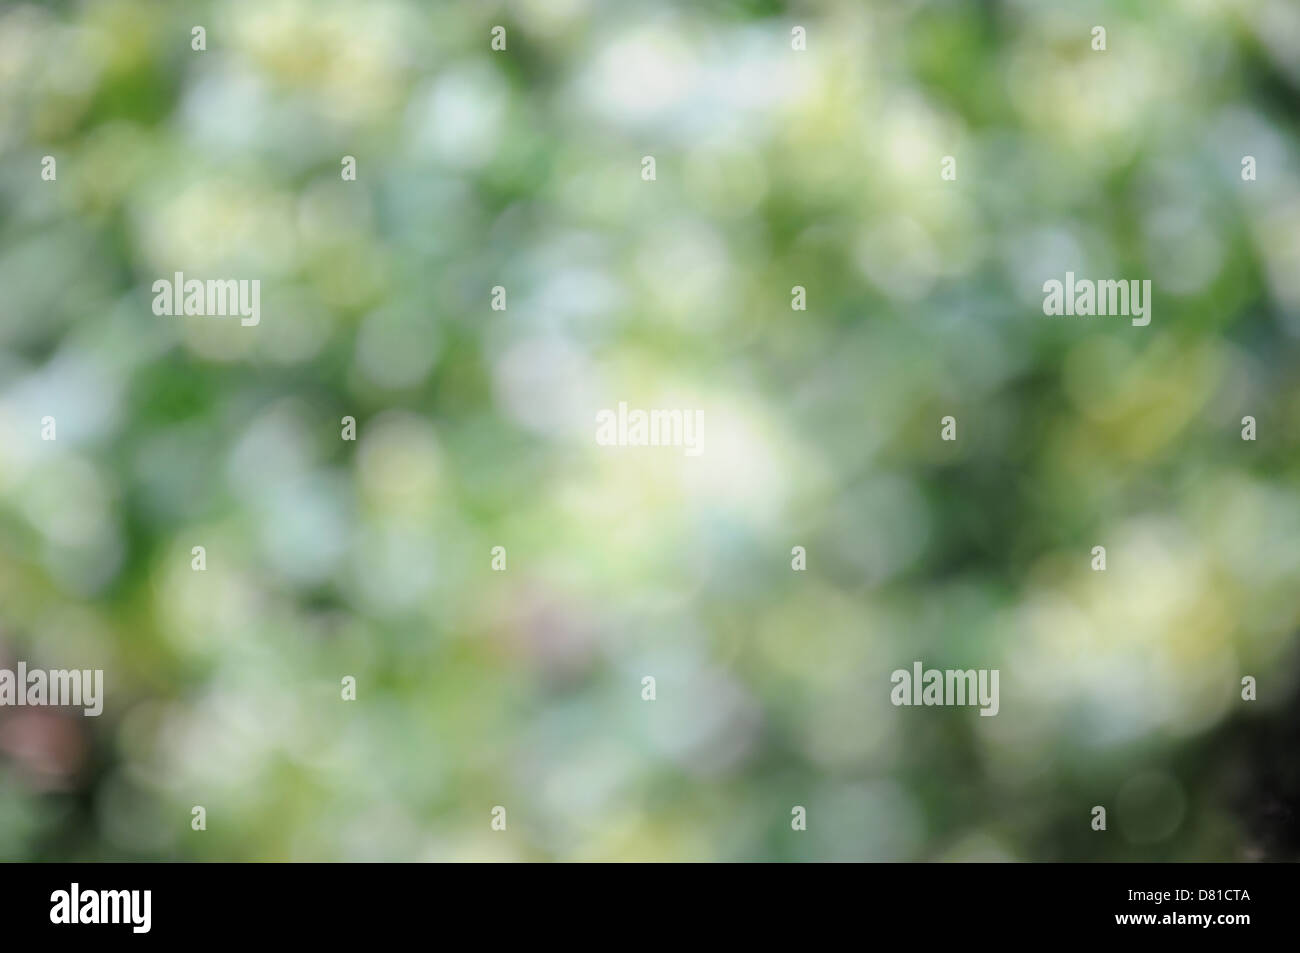 Green and white blurred background for accepting text - Stock Image